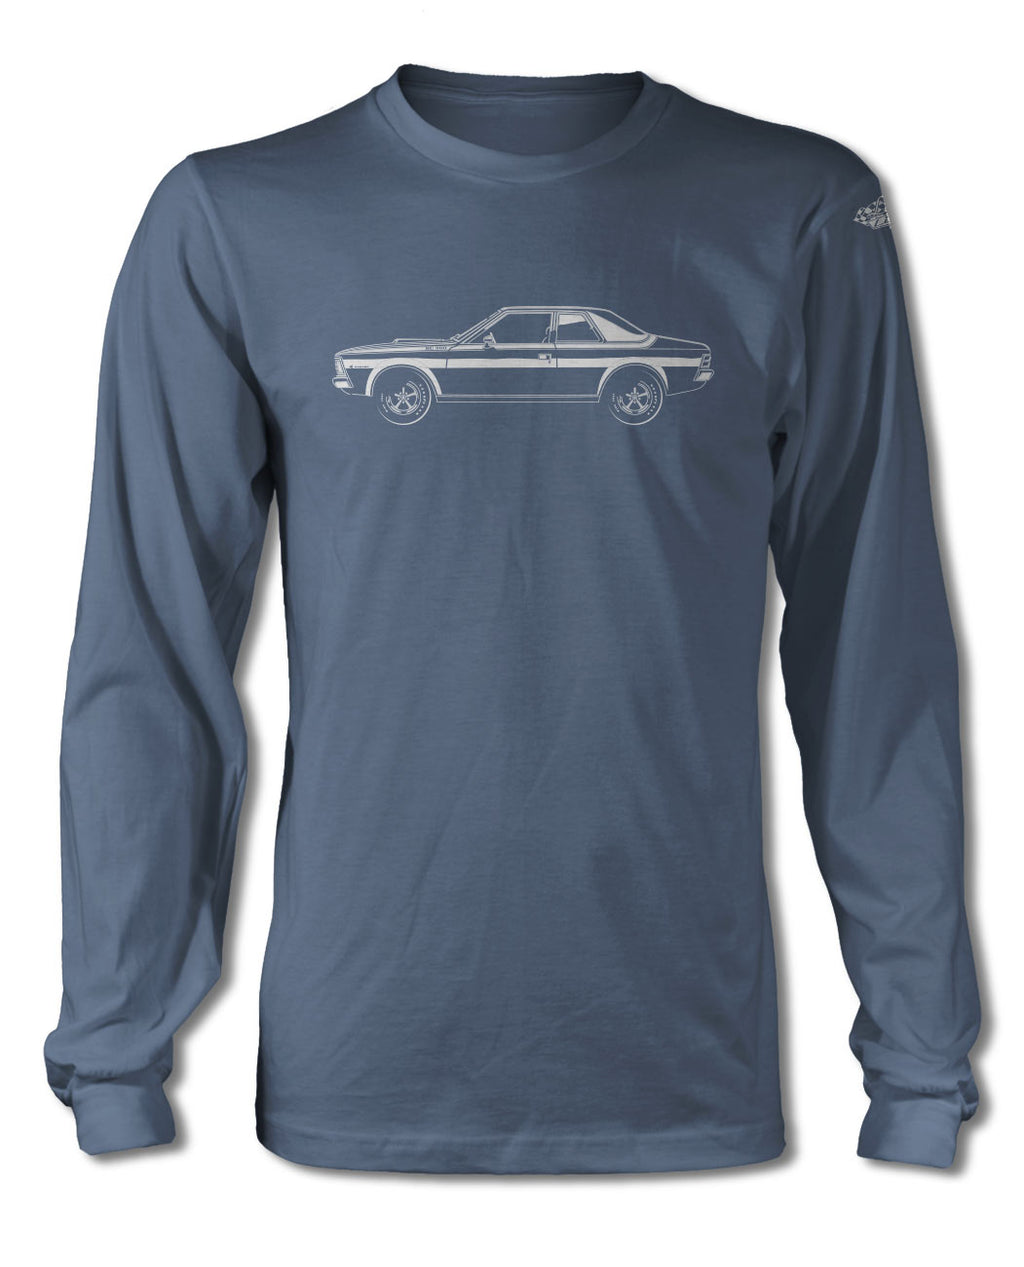 1971 AMC HORNET SC360 Coupe T-Shirt - Long Sleeves - Side View